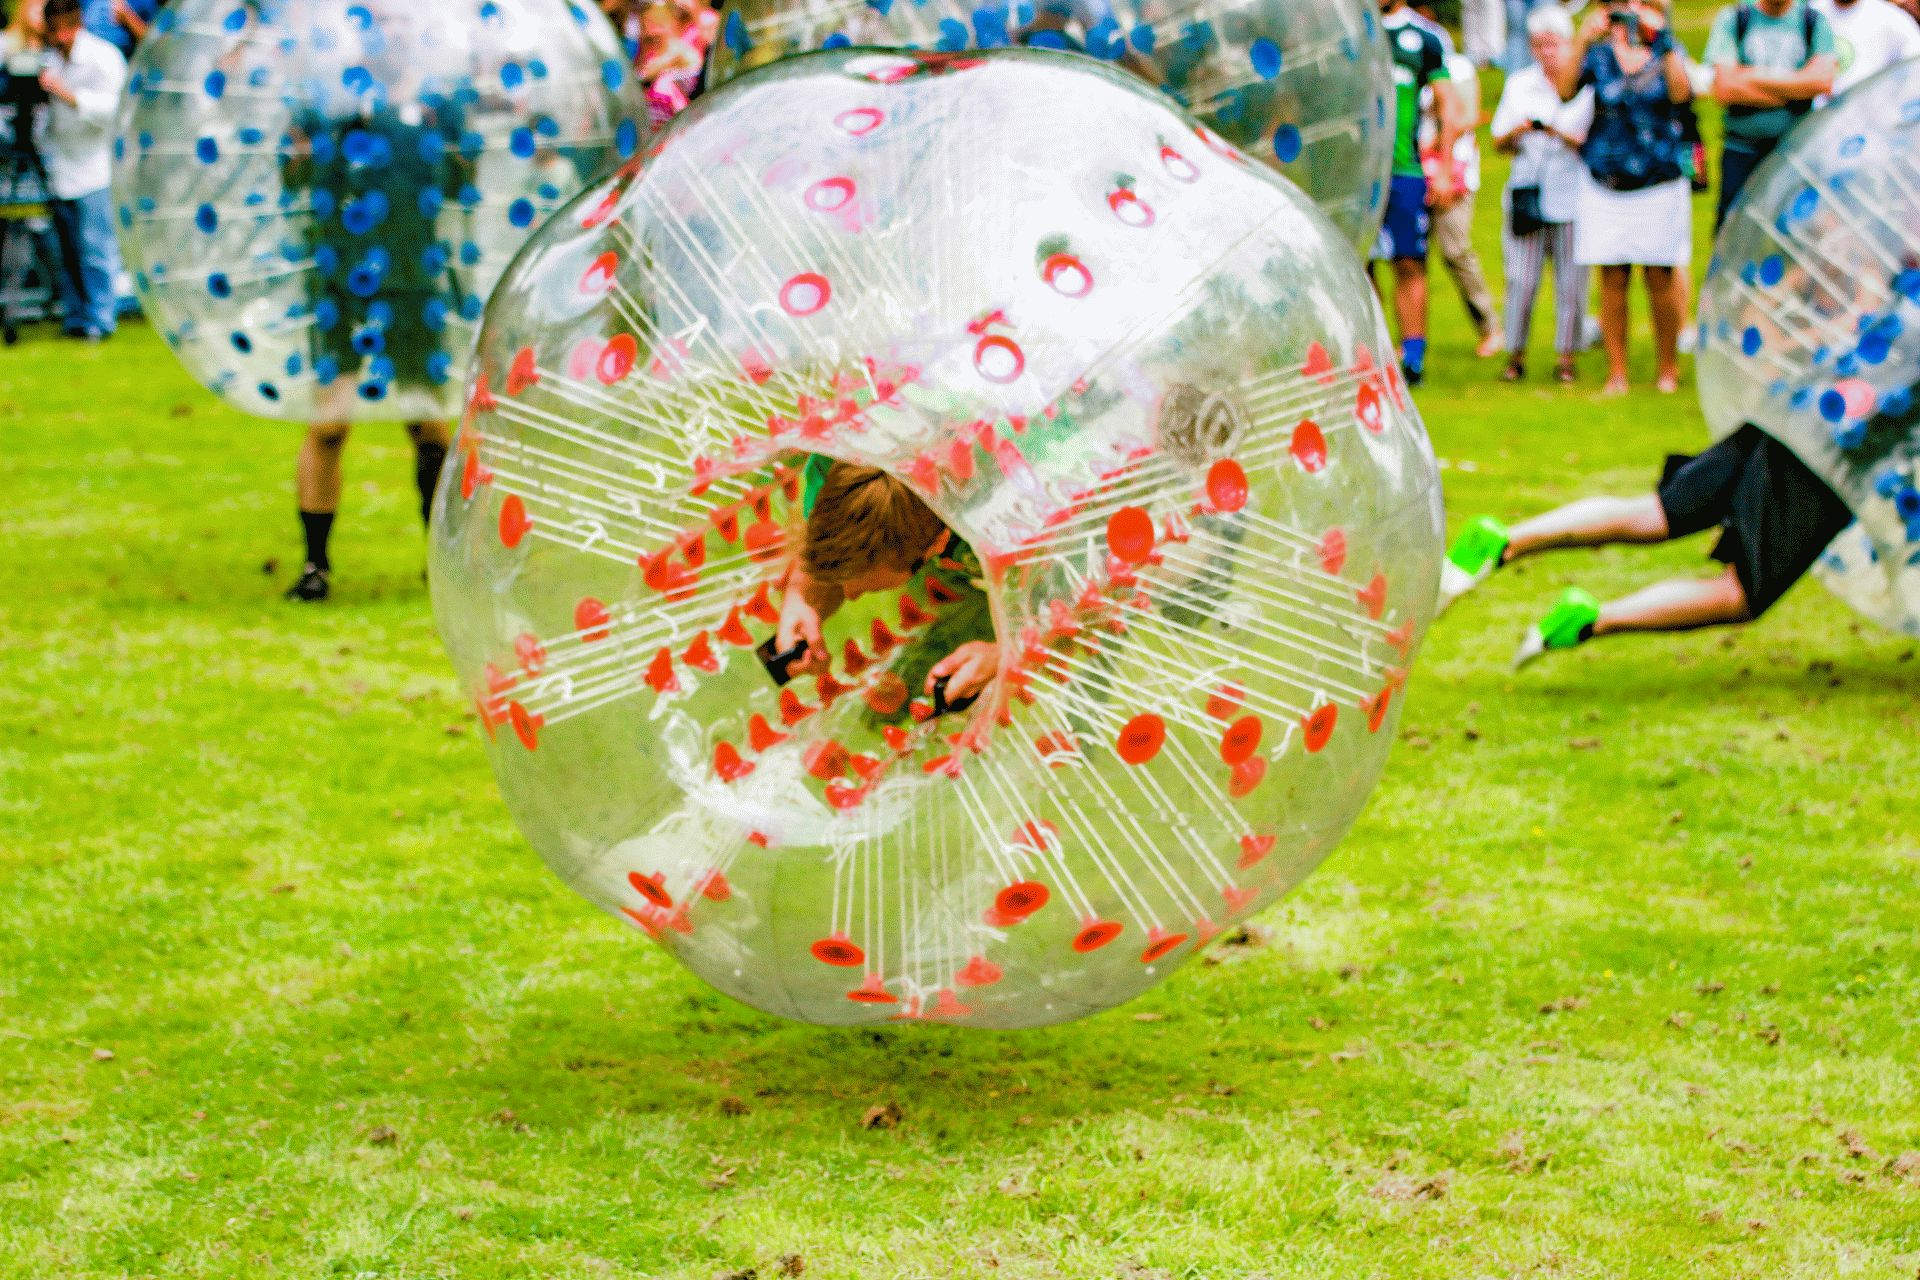 Sportpark Gelsenkirchen Bubble Ball